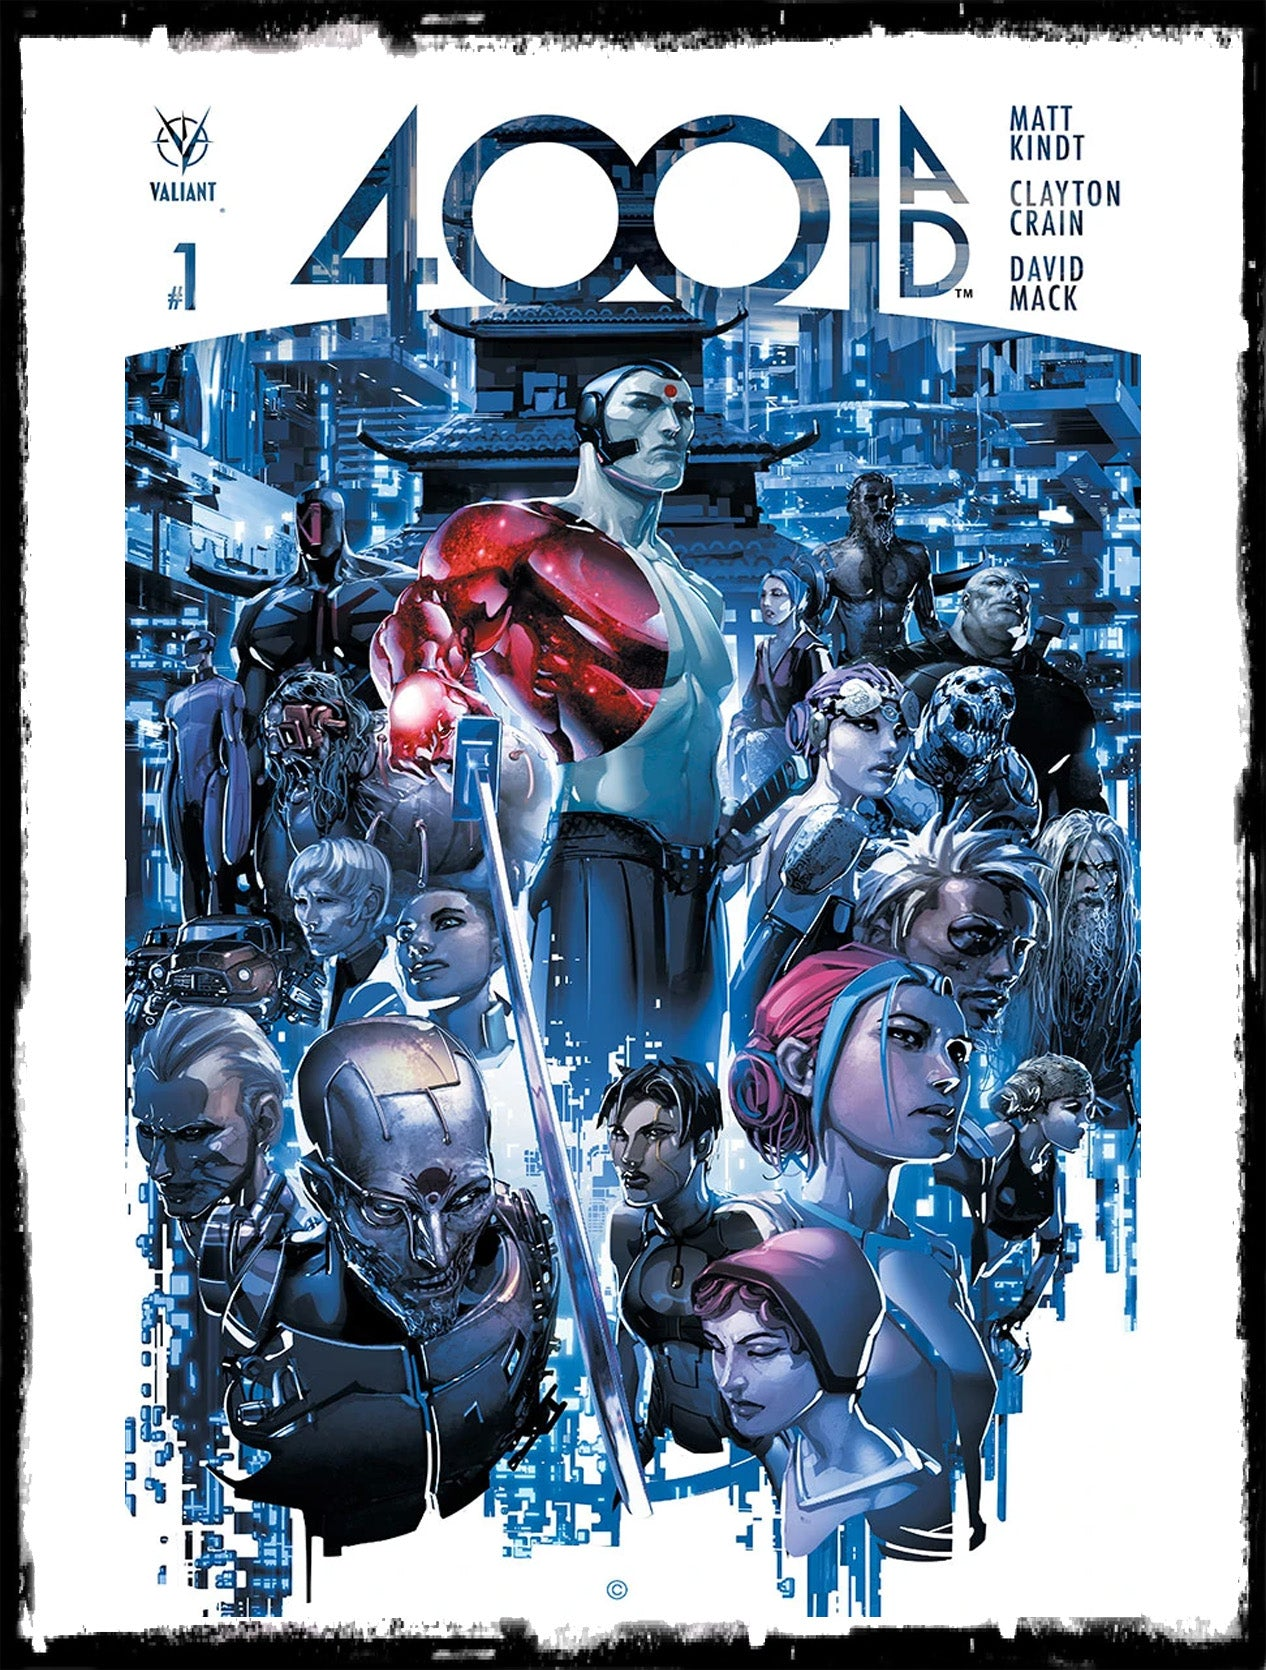 4001 A.D. #1 - CLAYTON CRAIN COVER (2016 - NM)